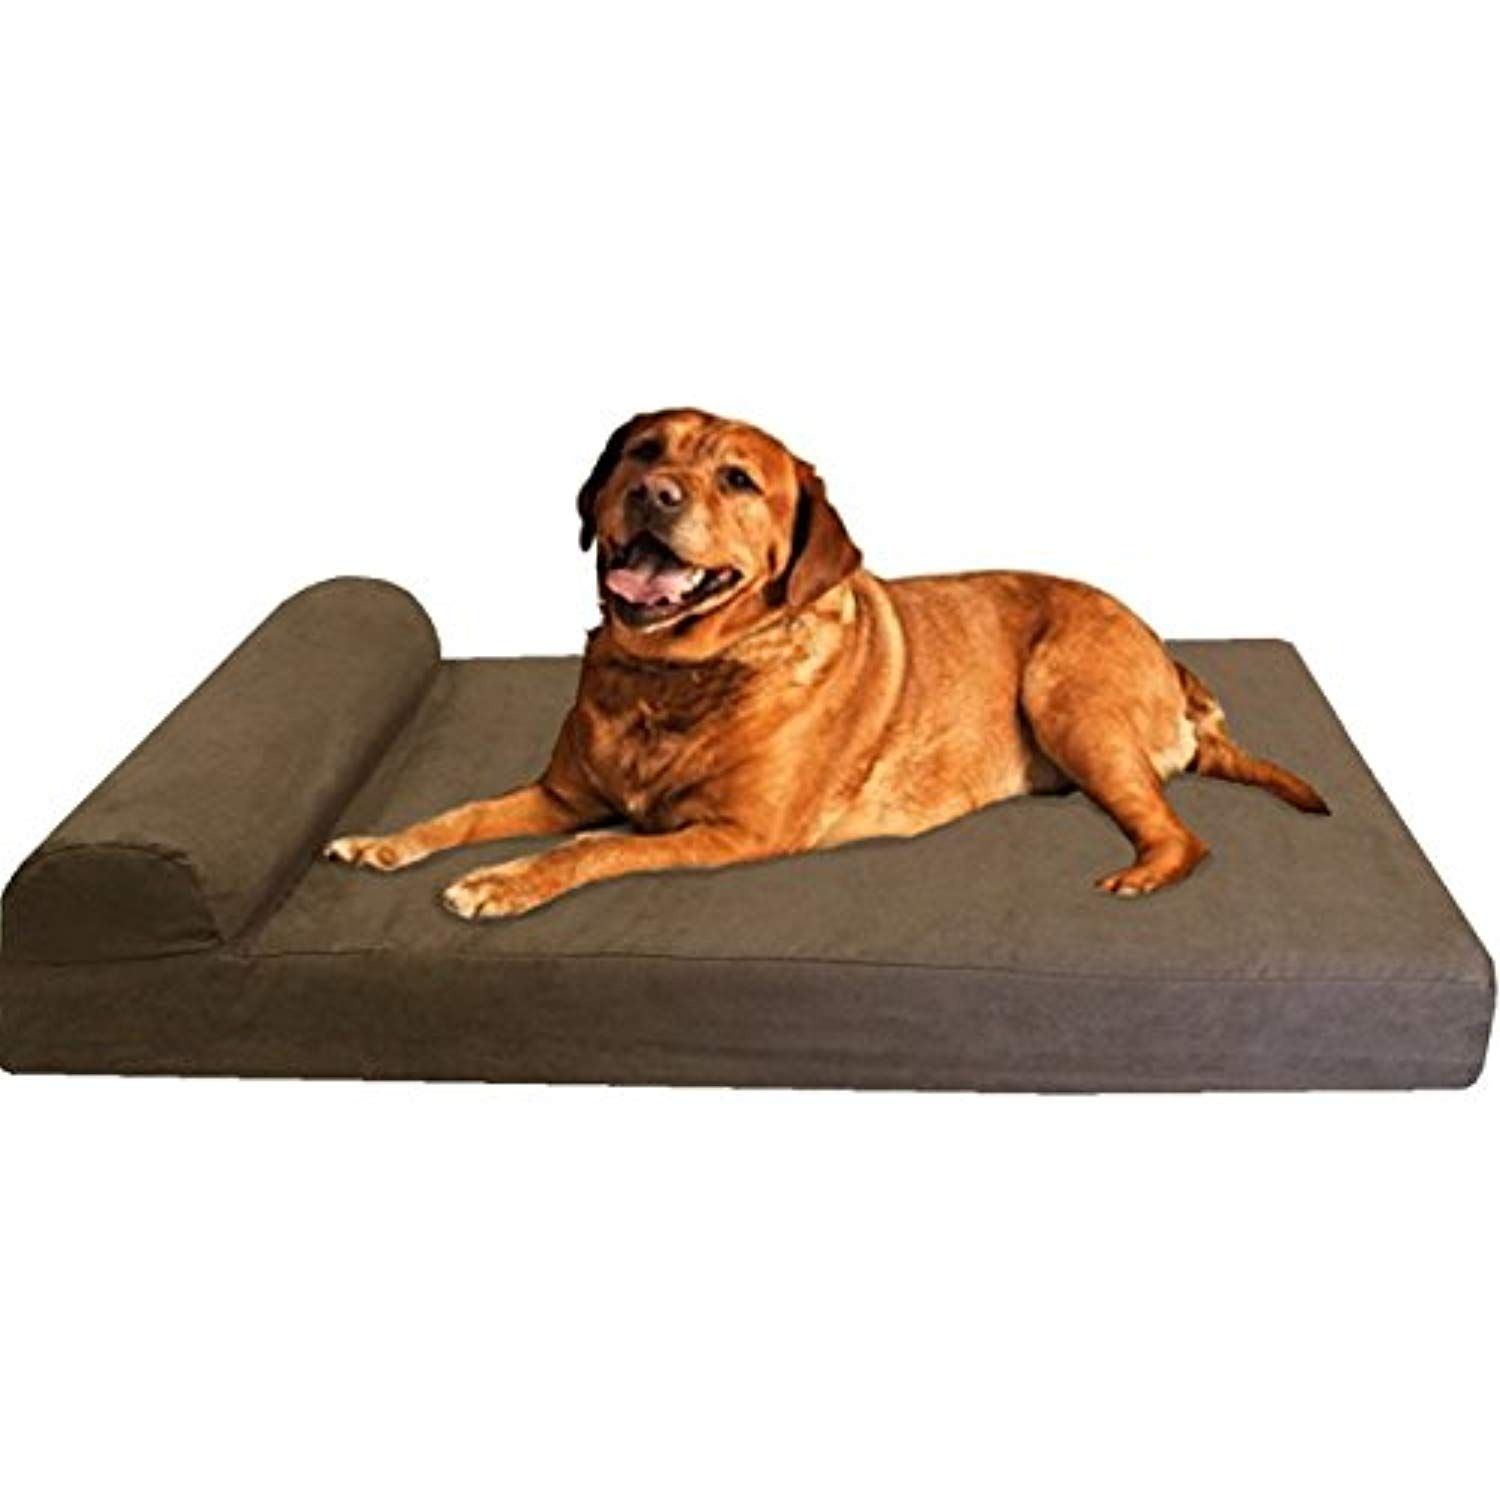 Dogbed4less Extra Large Head Rest Orthopedic Gel Cooling Memory